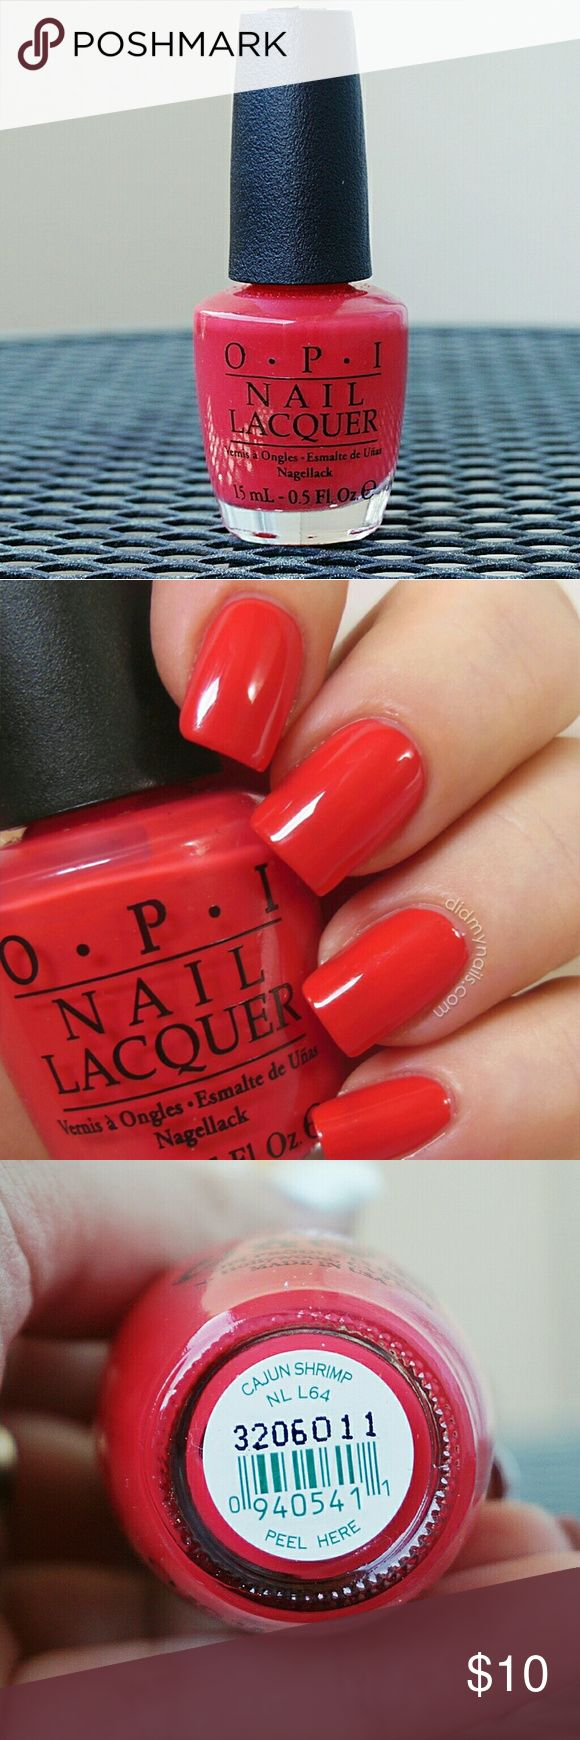 *NEW* OPI Cajun Shrimp Nail Polish HOT RED/PINK NAIL POLISH *NEW* Ships in 1-3 days. Remember to bundle so you get more bang for your buck! Also you'll only have to pay shipping once! OPI Makeup